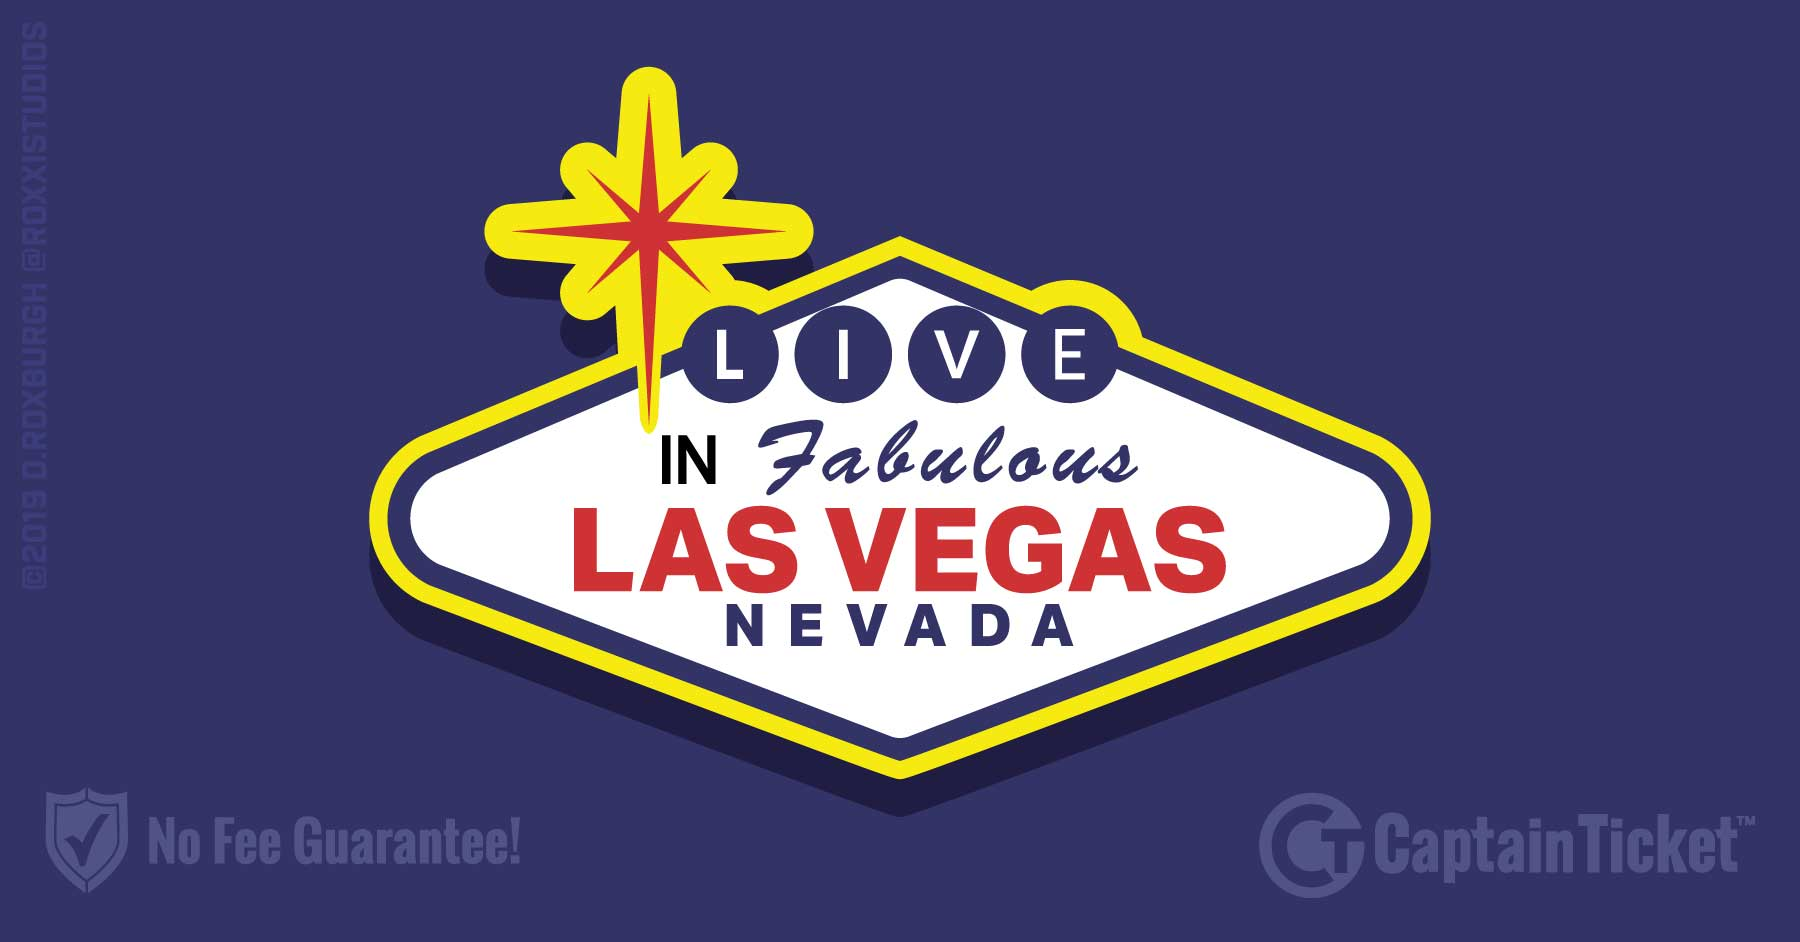 Las Vegas Event Ticket Broker With No Fees